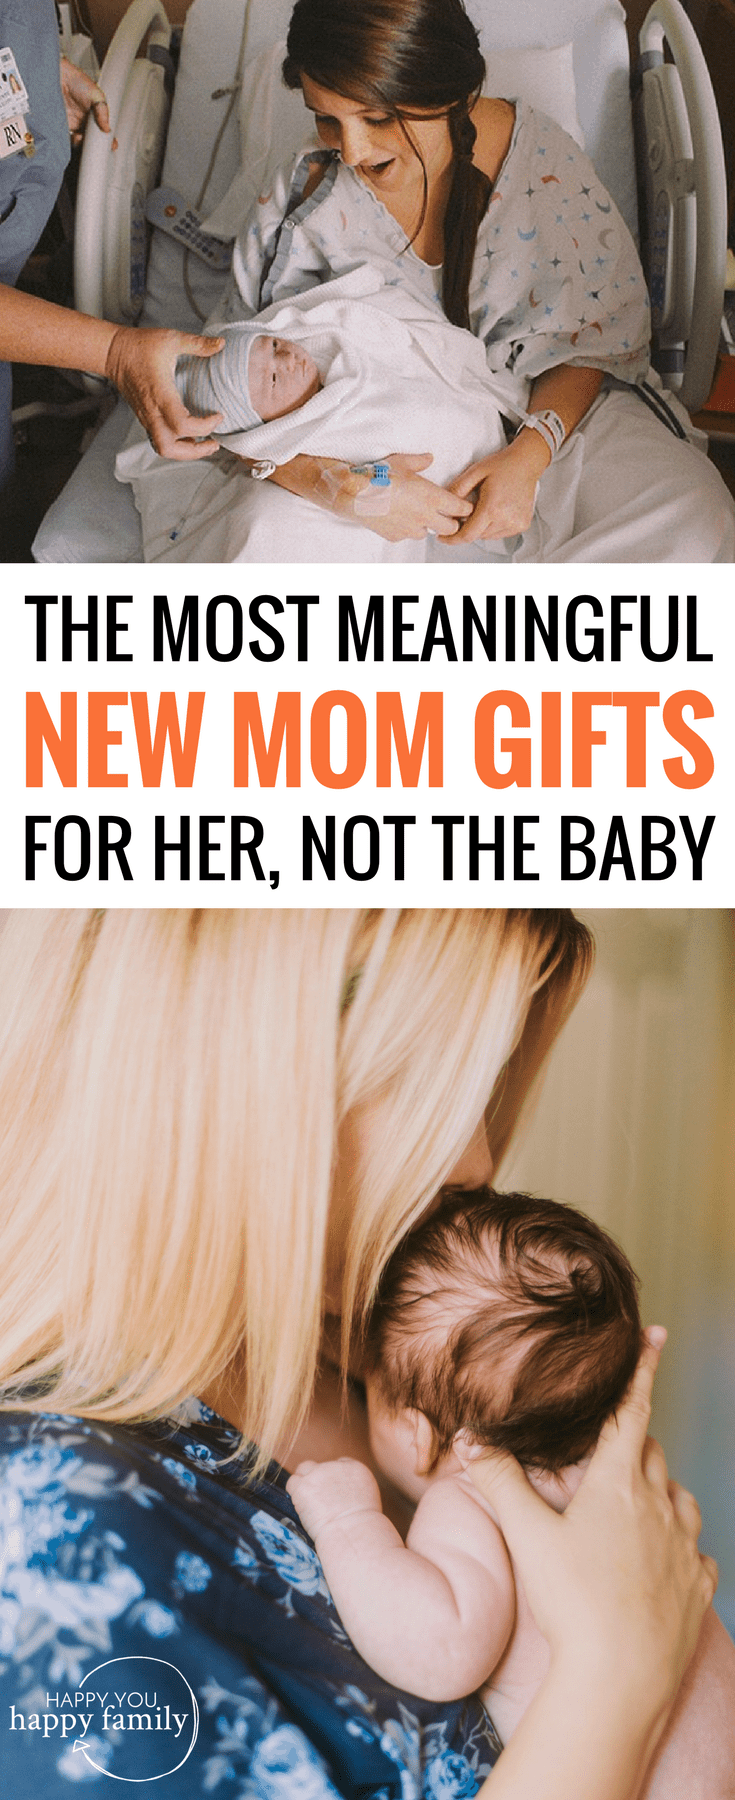 36 awesome new mom gifts that shell actually appreciate